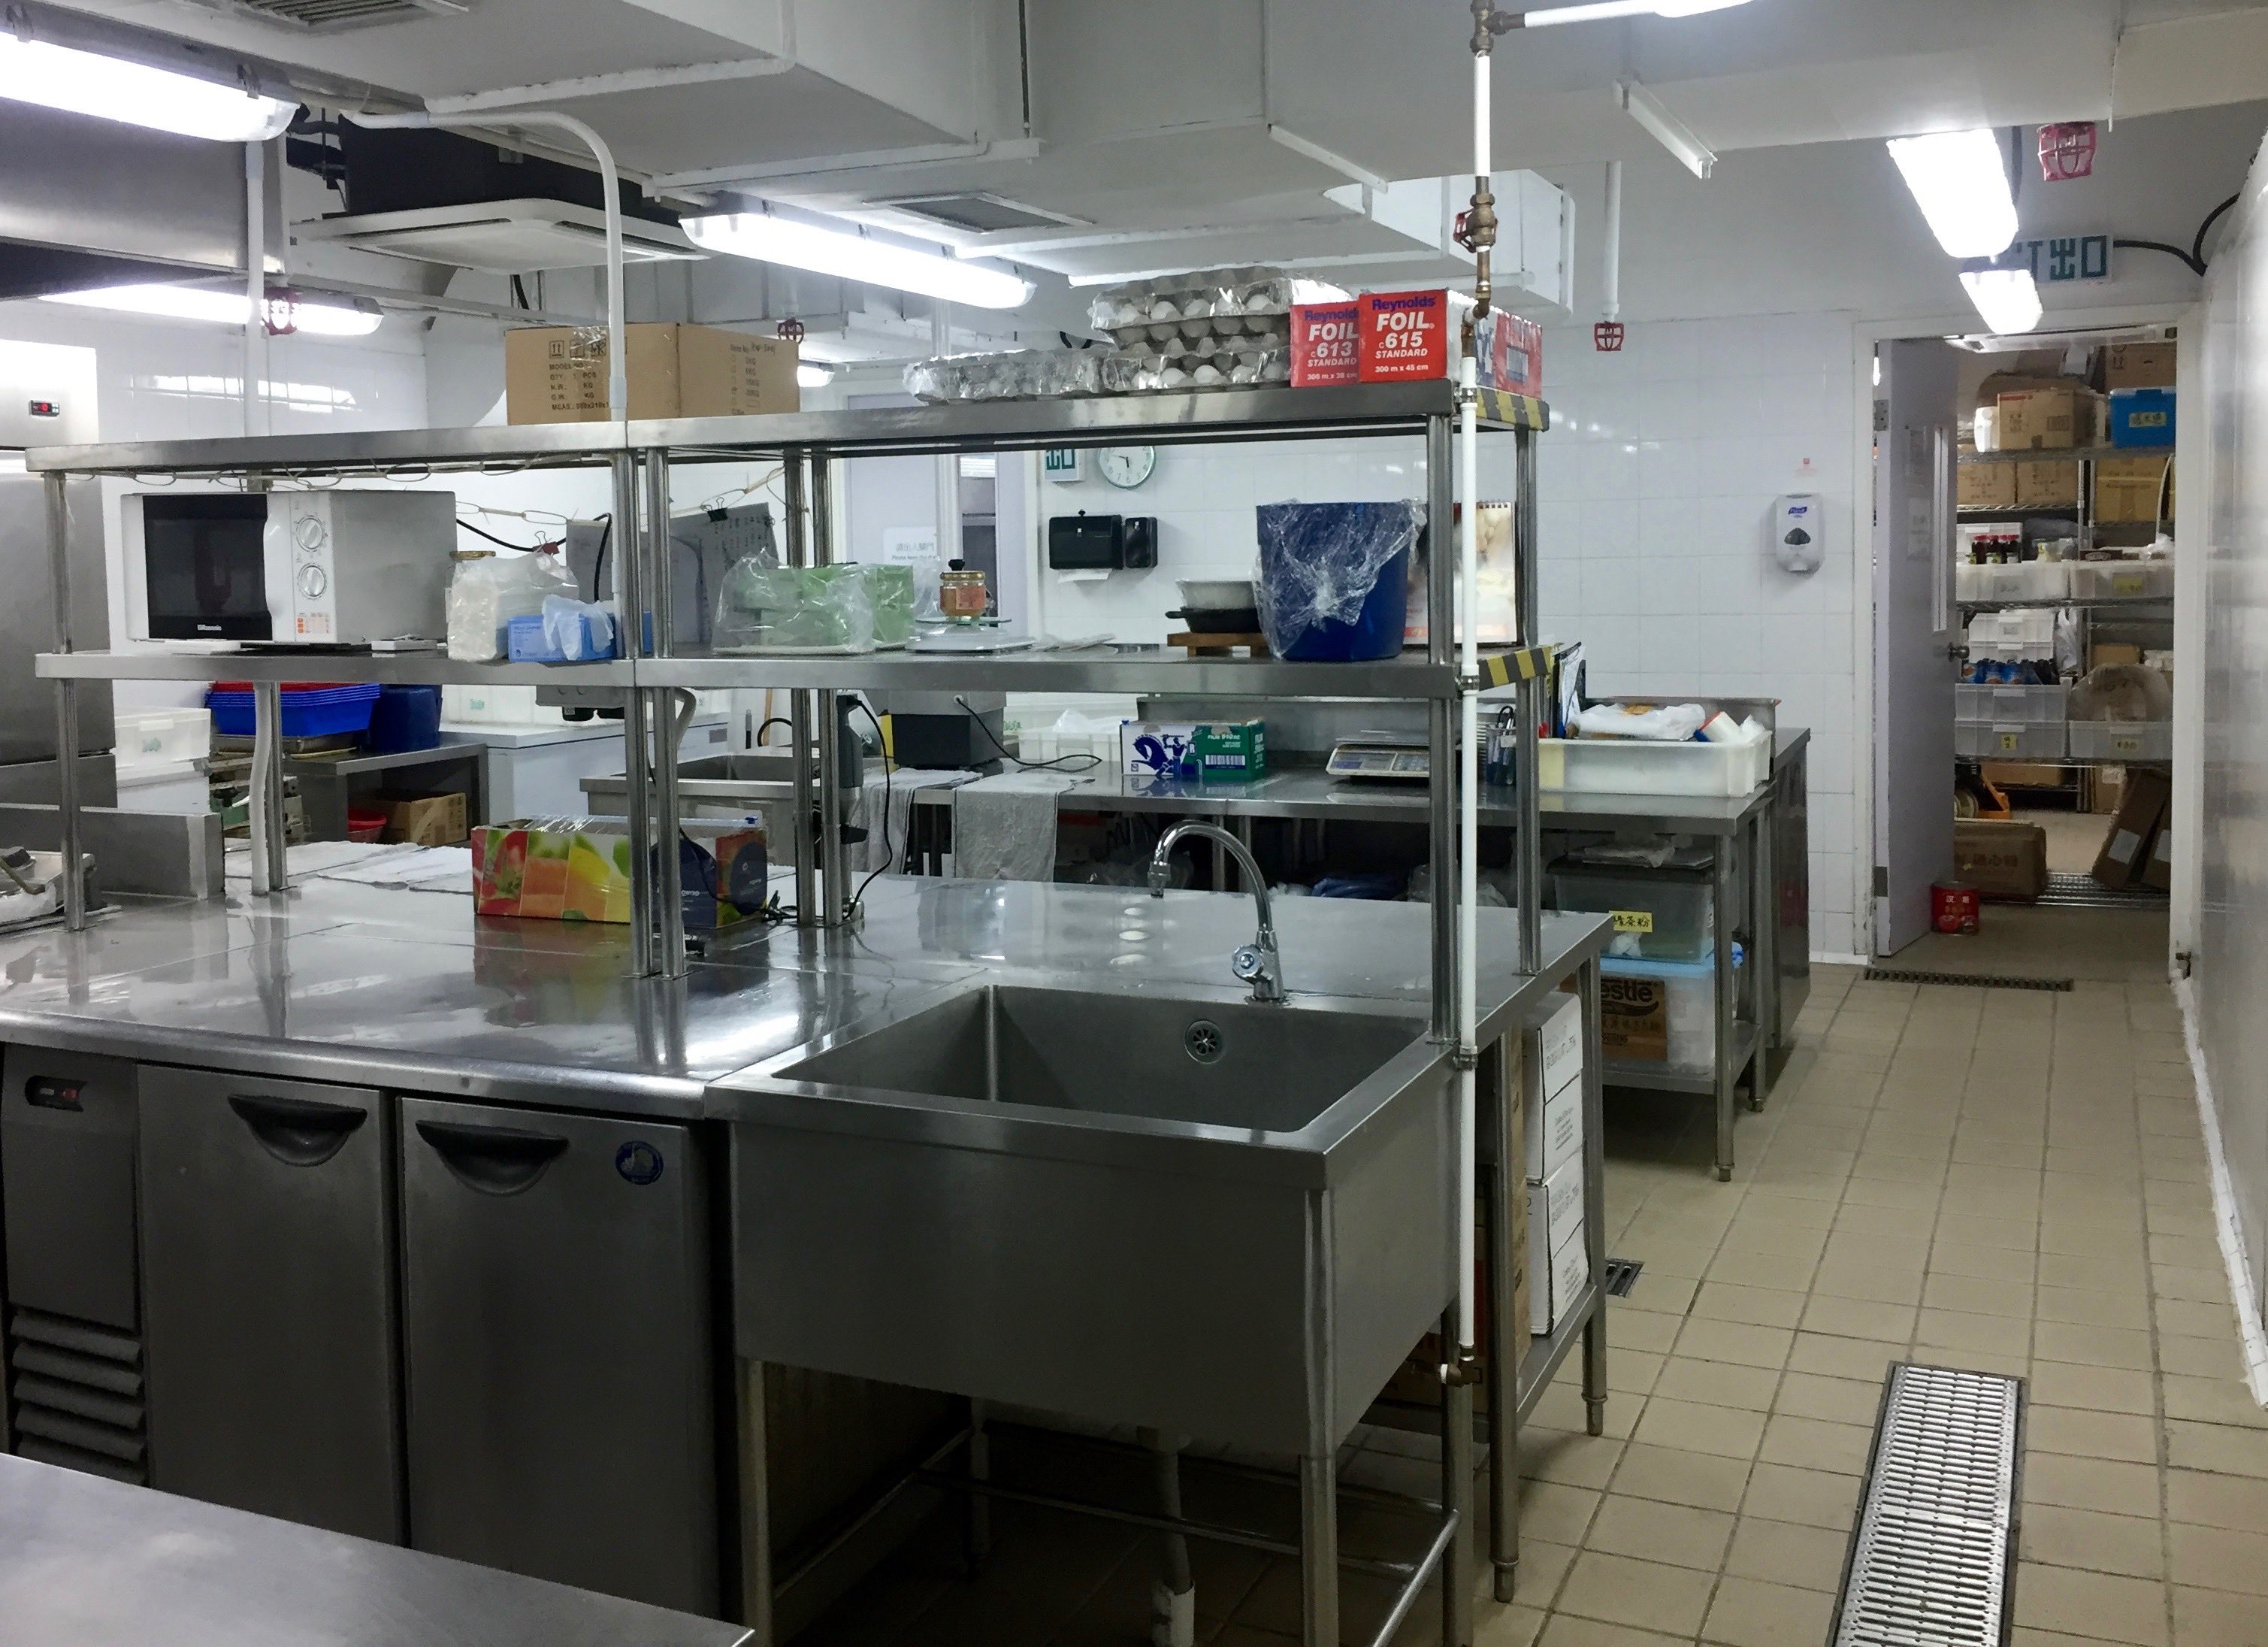 ... Hong Kong Central Kitchen For Sale With Full Equipments Food Factory  Licence ...